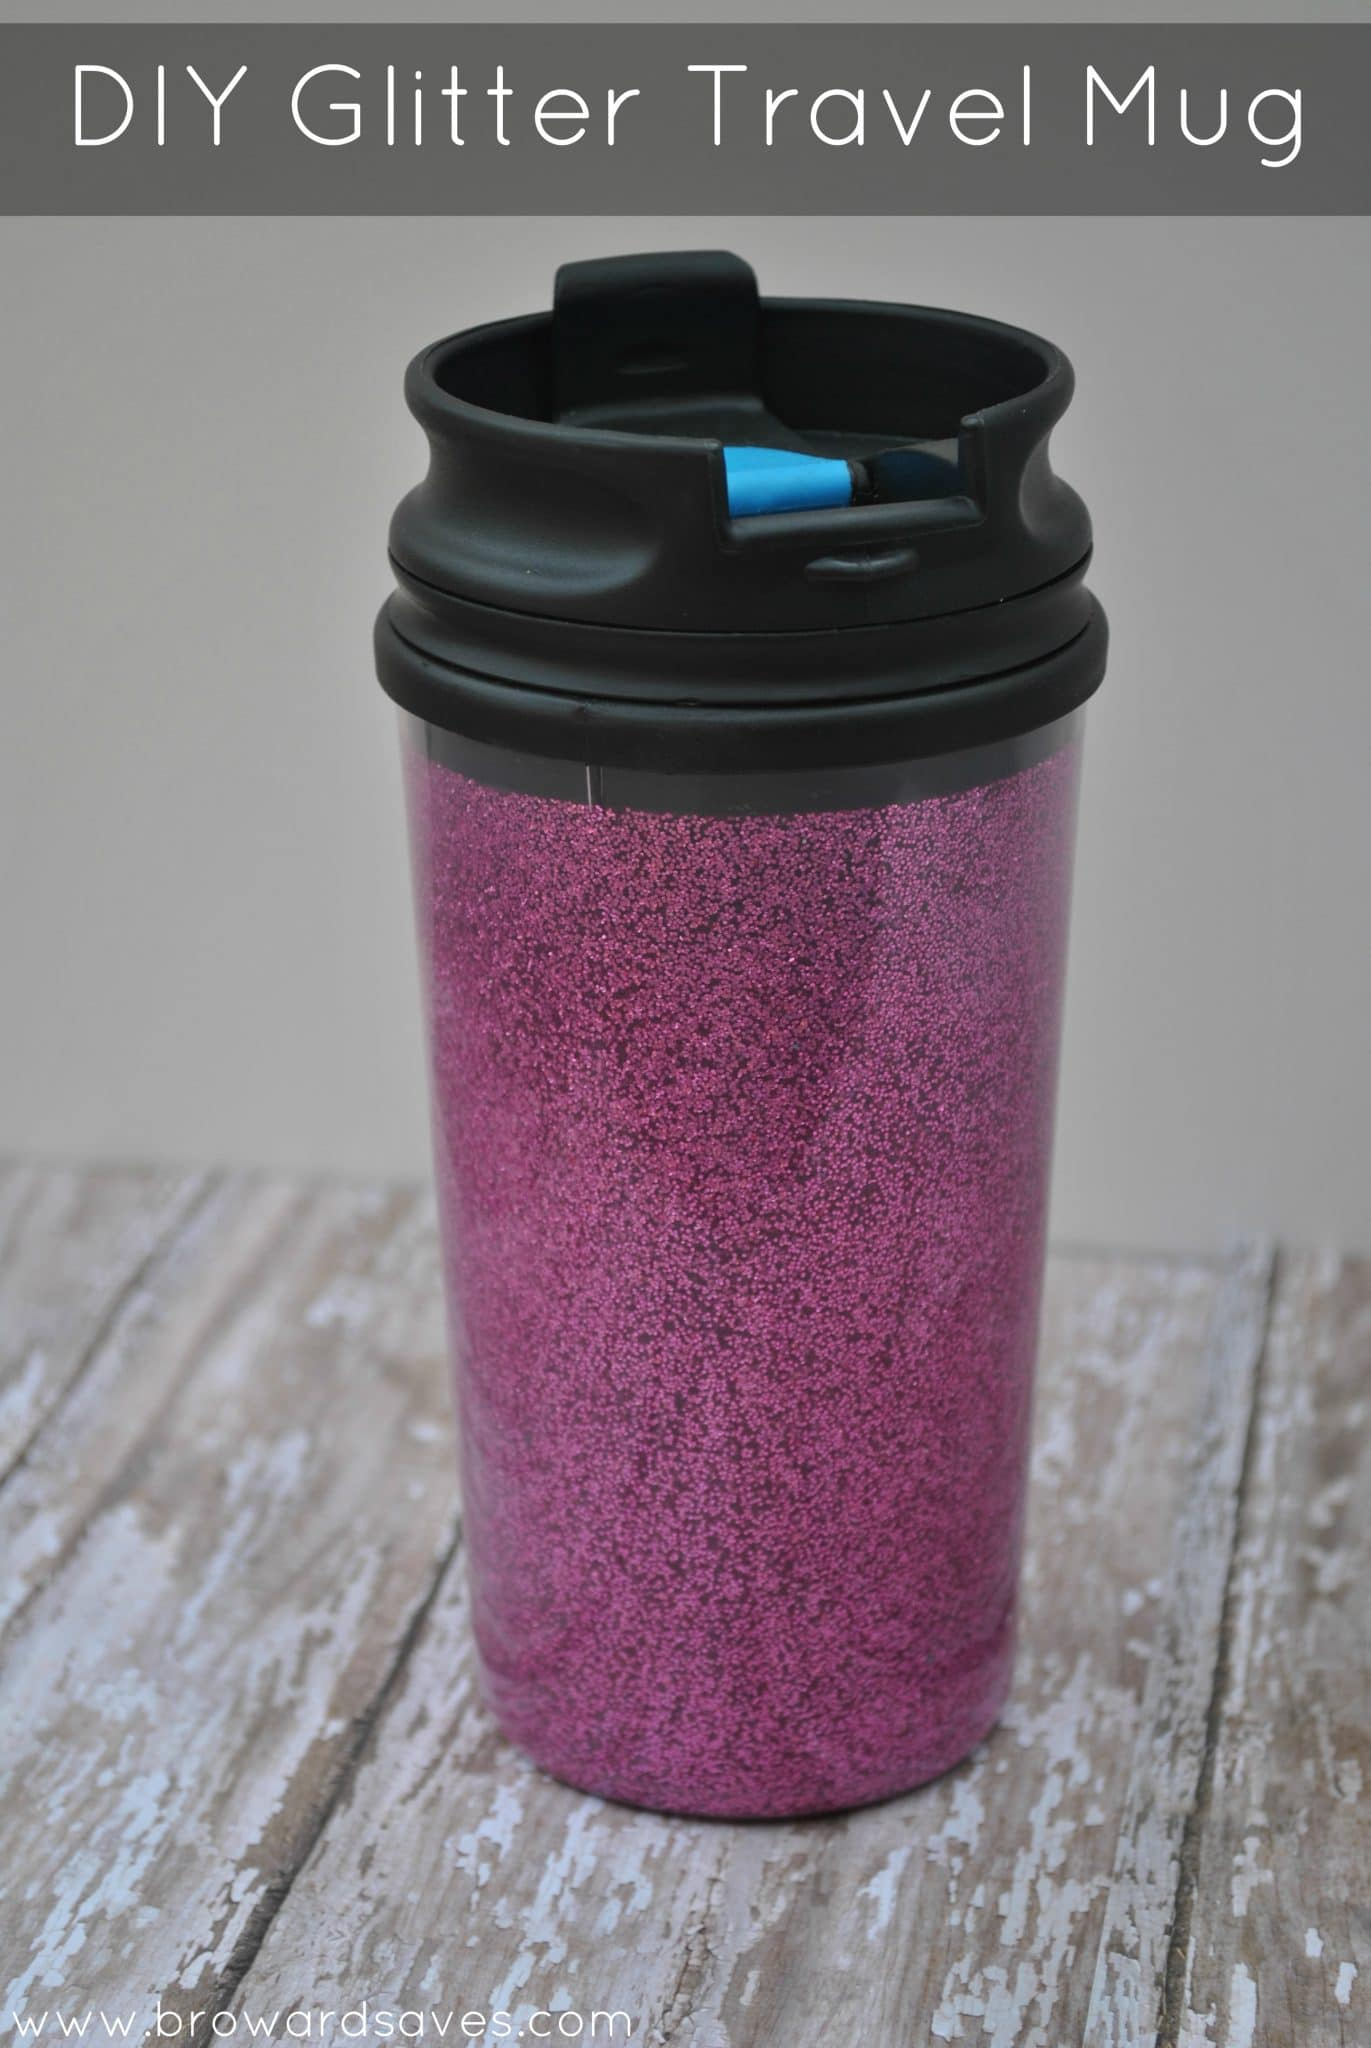 Weekend Project Diy Travel Mug For Just 1 Living Sweet Moments